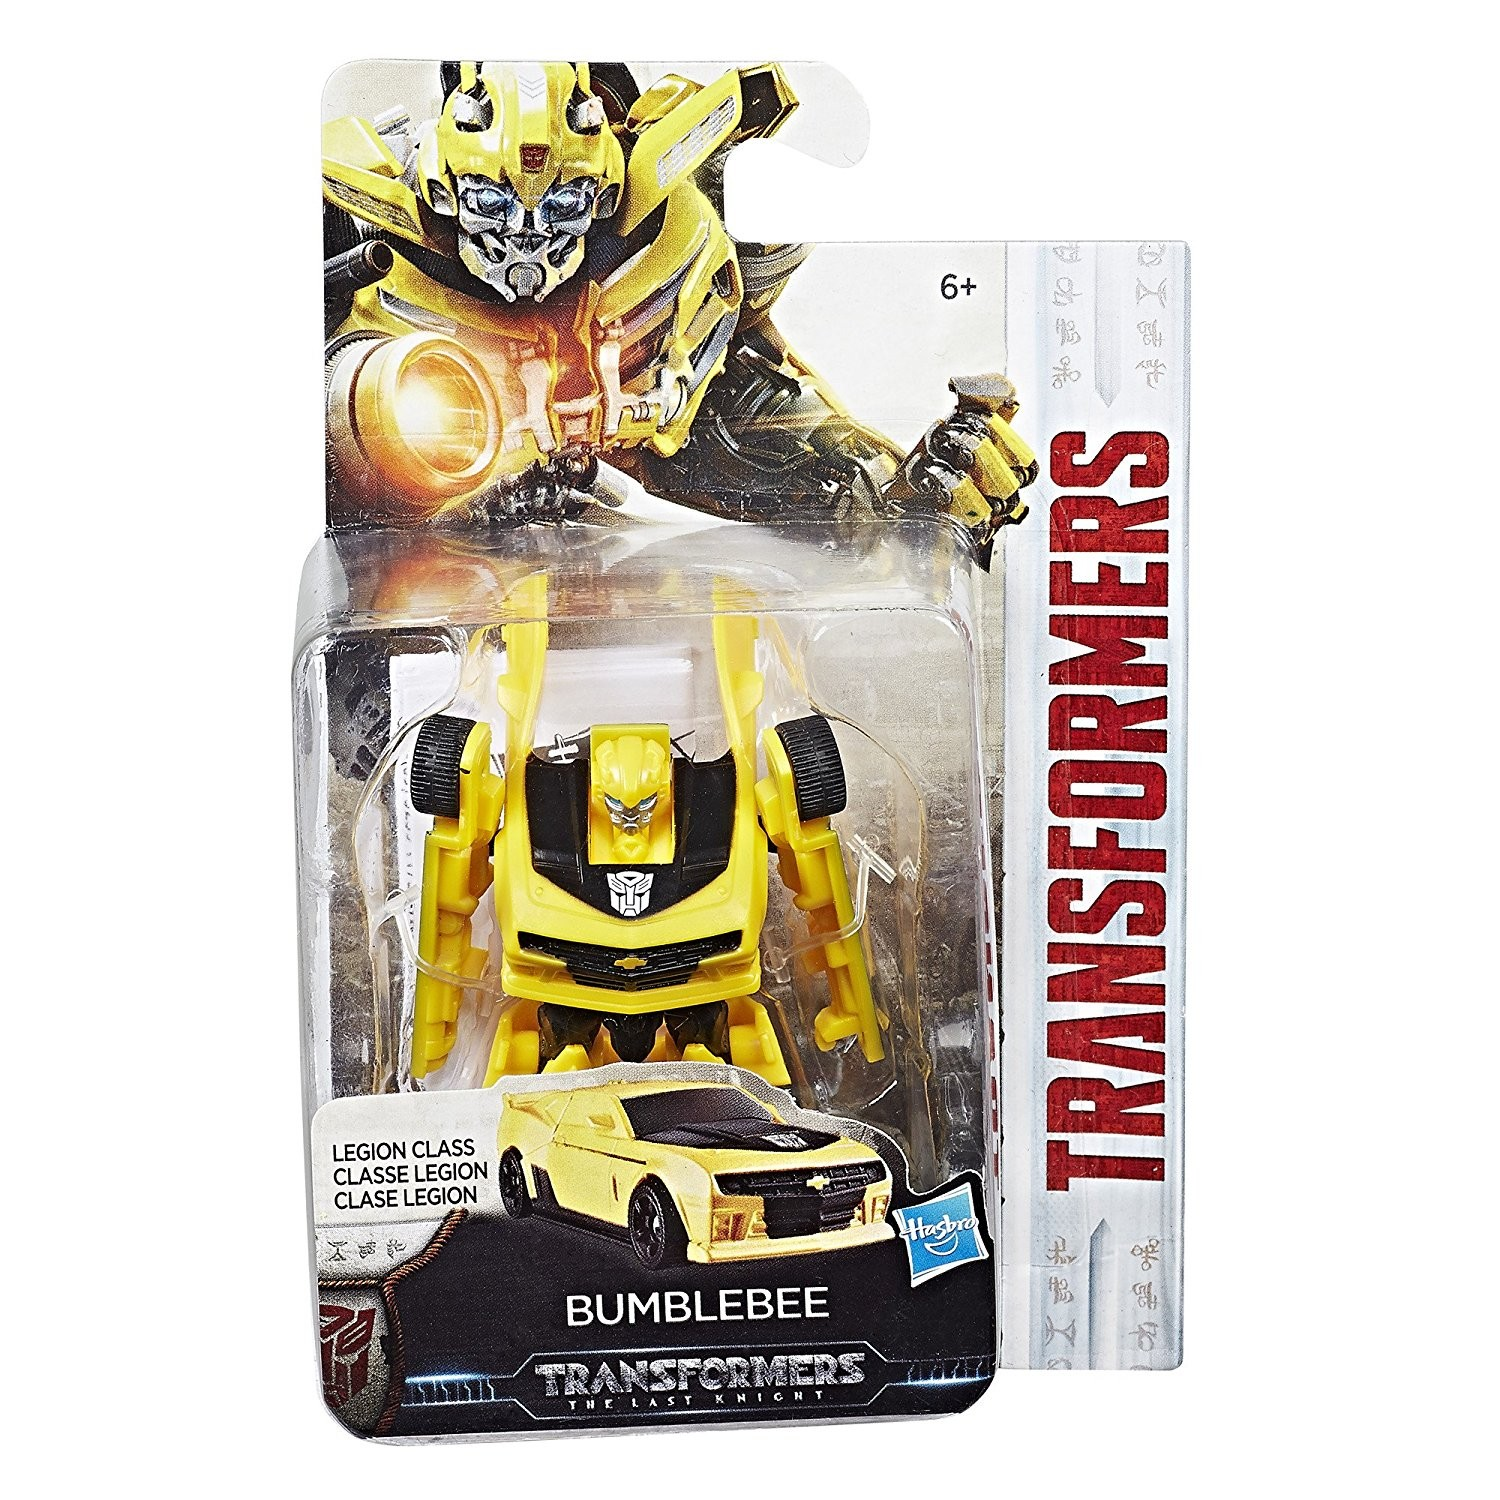 Transformers News: First Official Images of Legion Megatron and other Legion figures from Transformers: The Last Knight